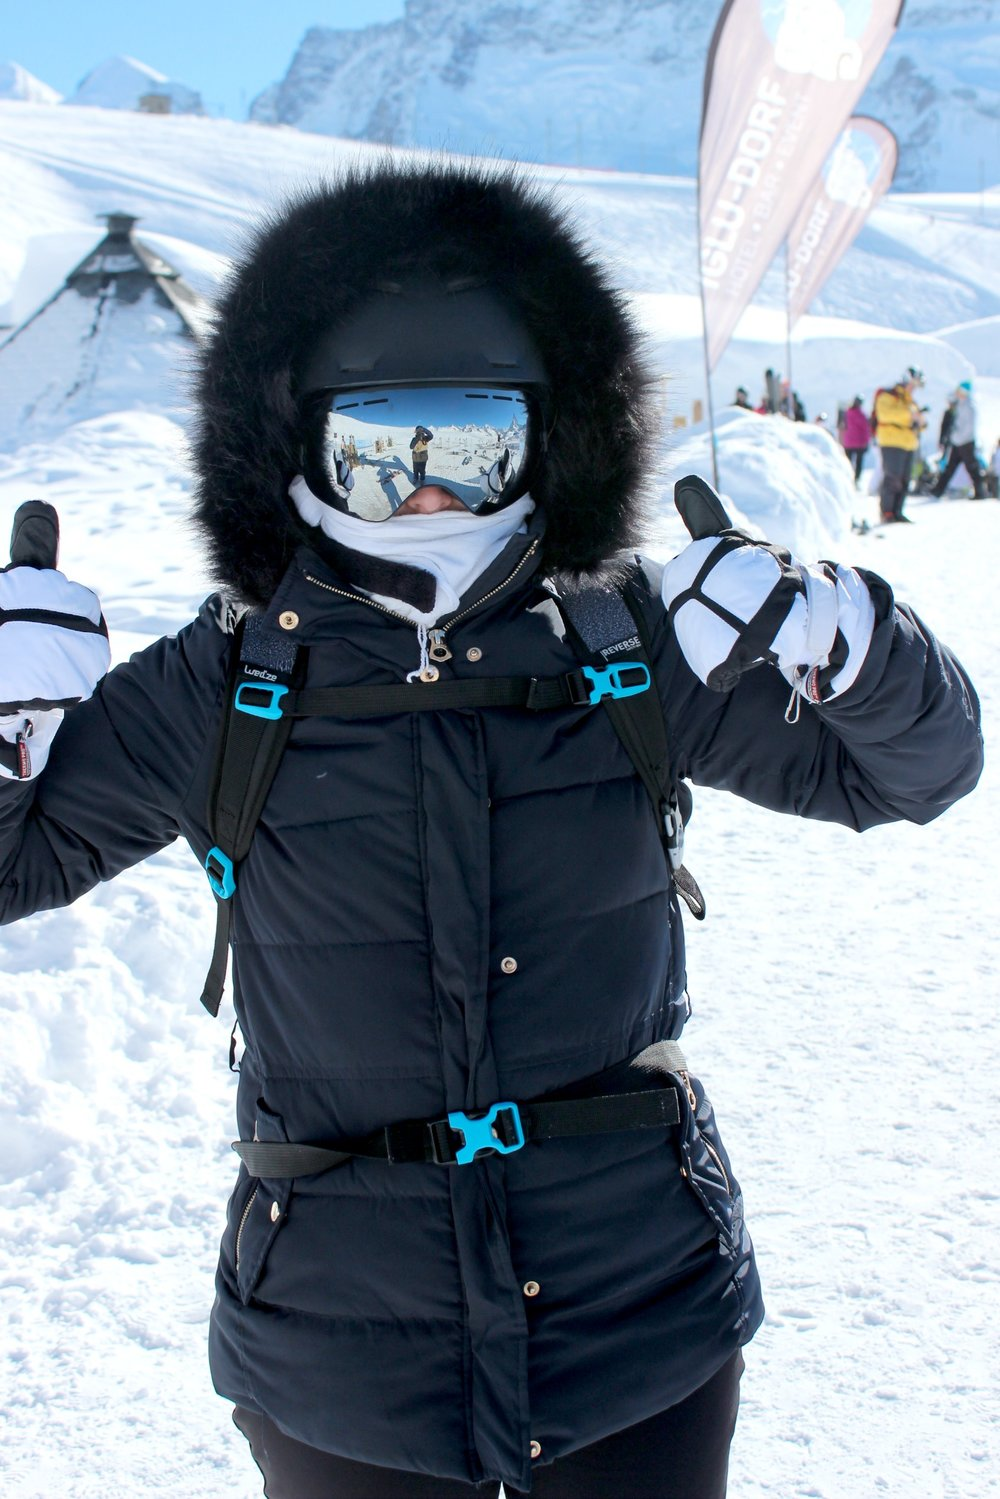 zermatt-iglo-dorp-eskimo-thumbs-up.jpg